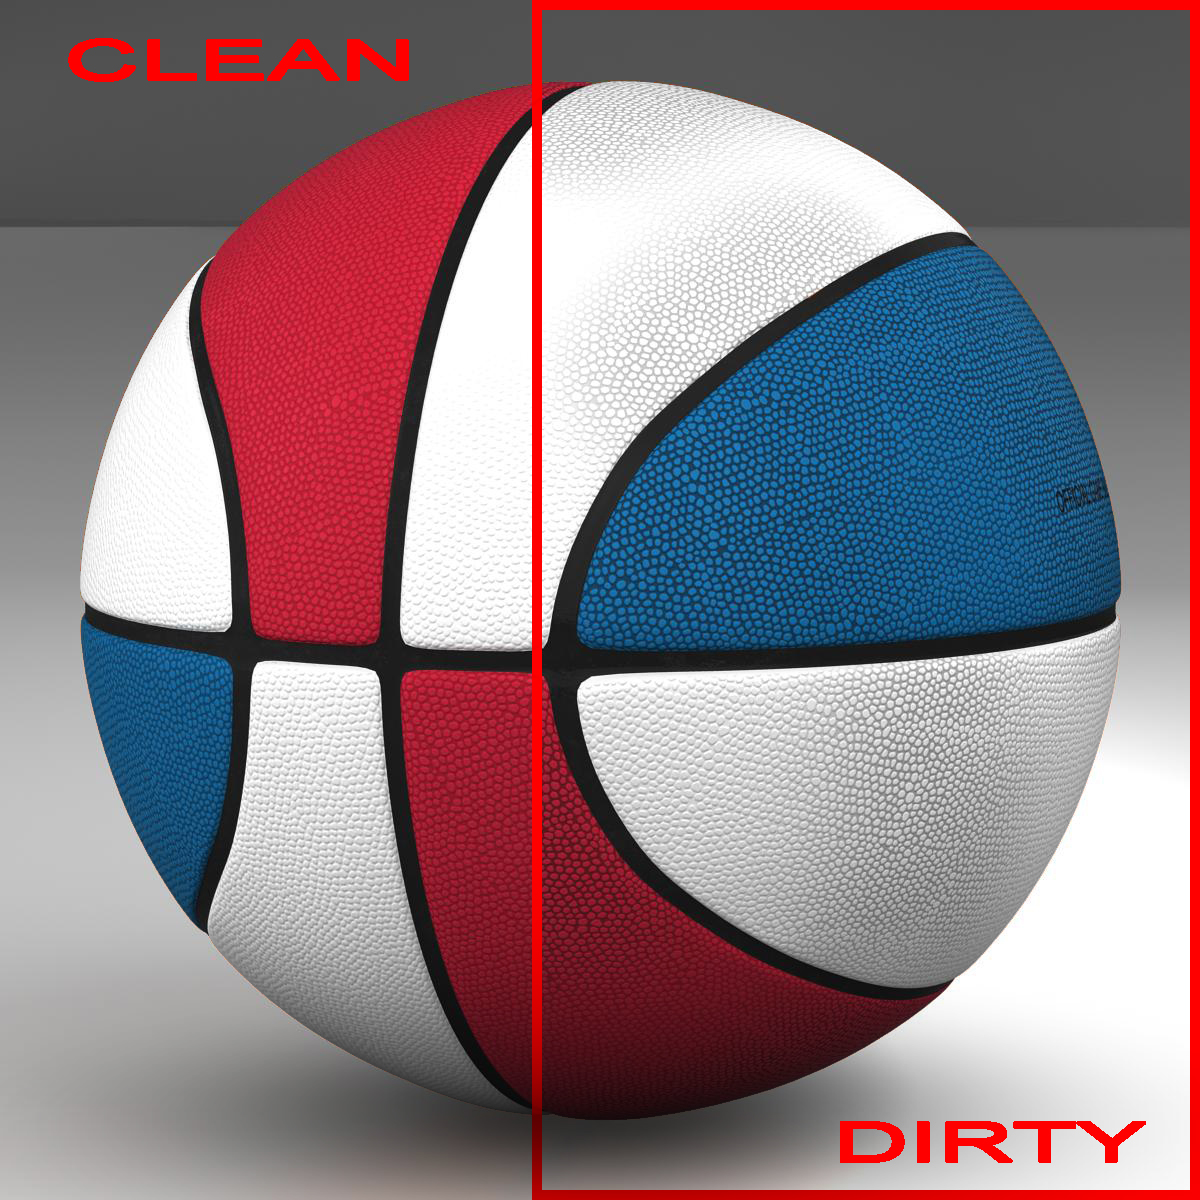 tricolor basketball ball 3d model 3ds max fbx c4d ma mb obj 164846